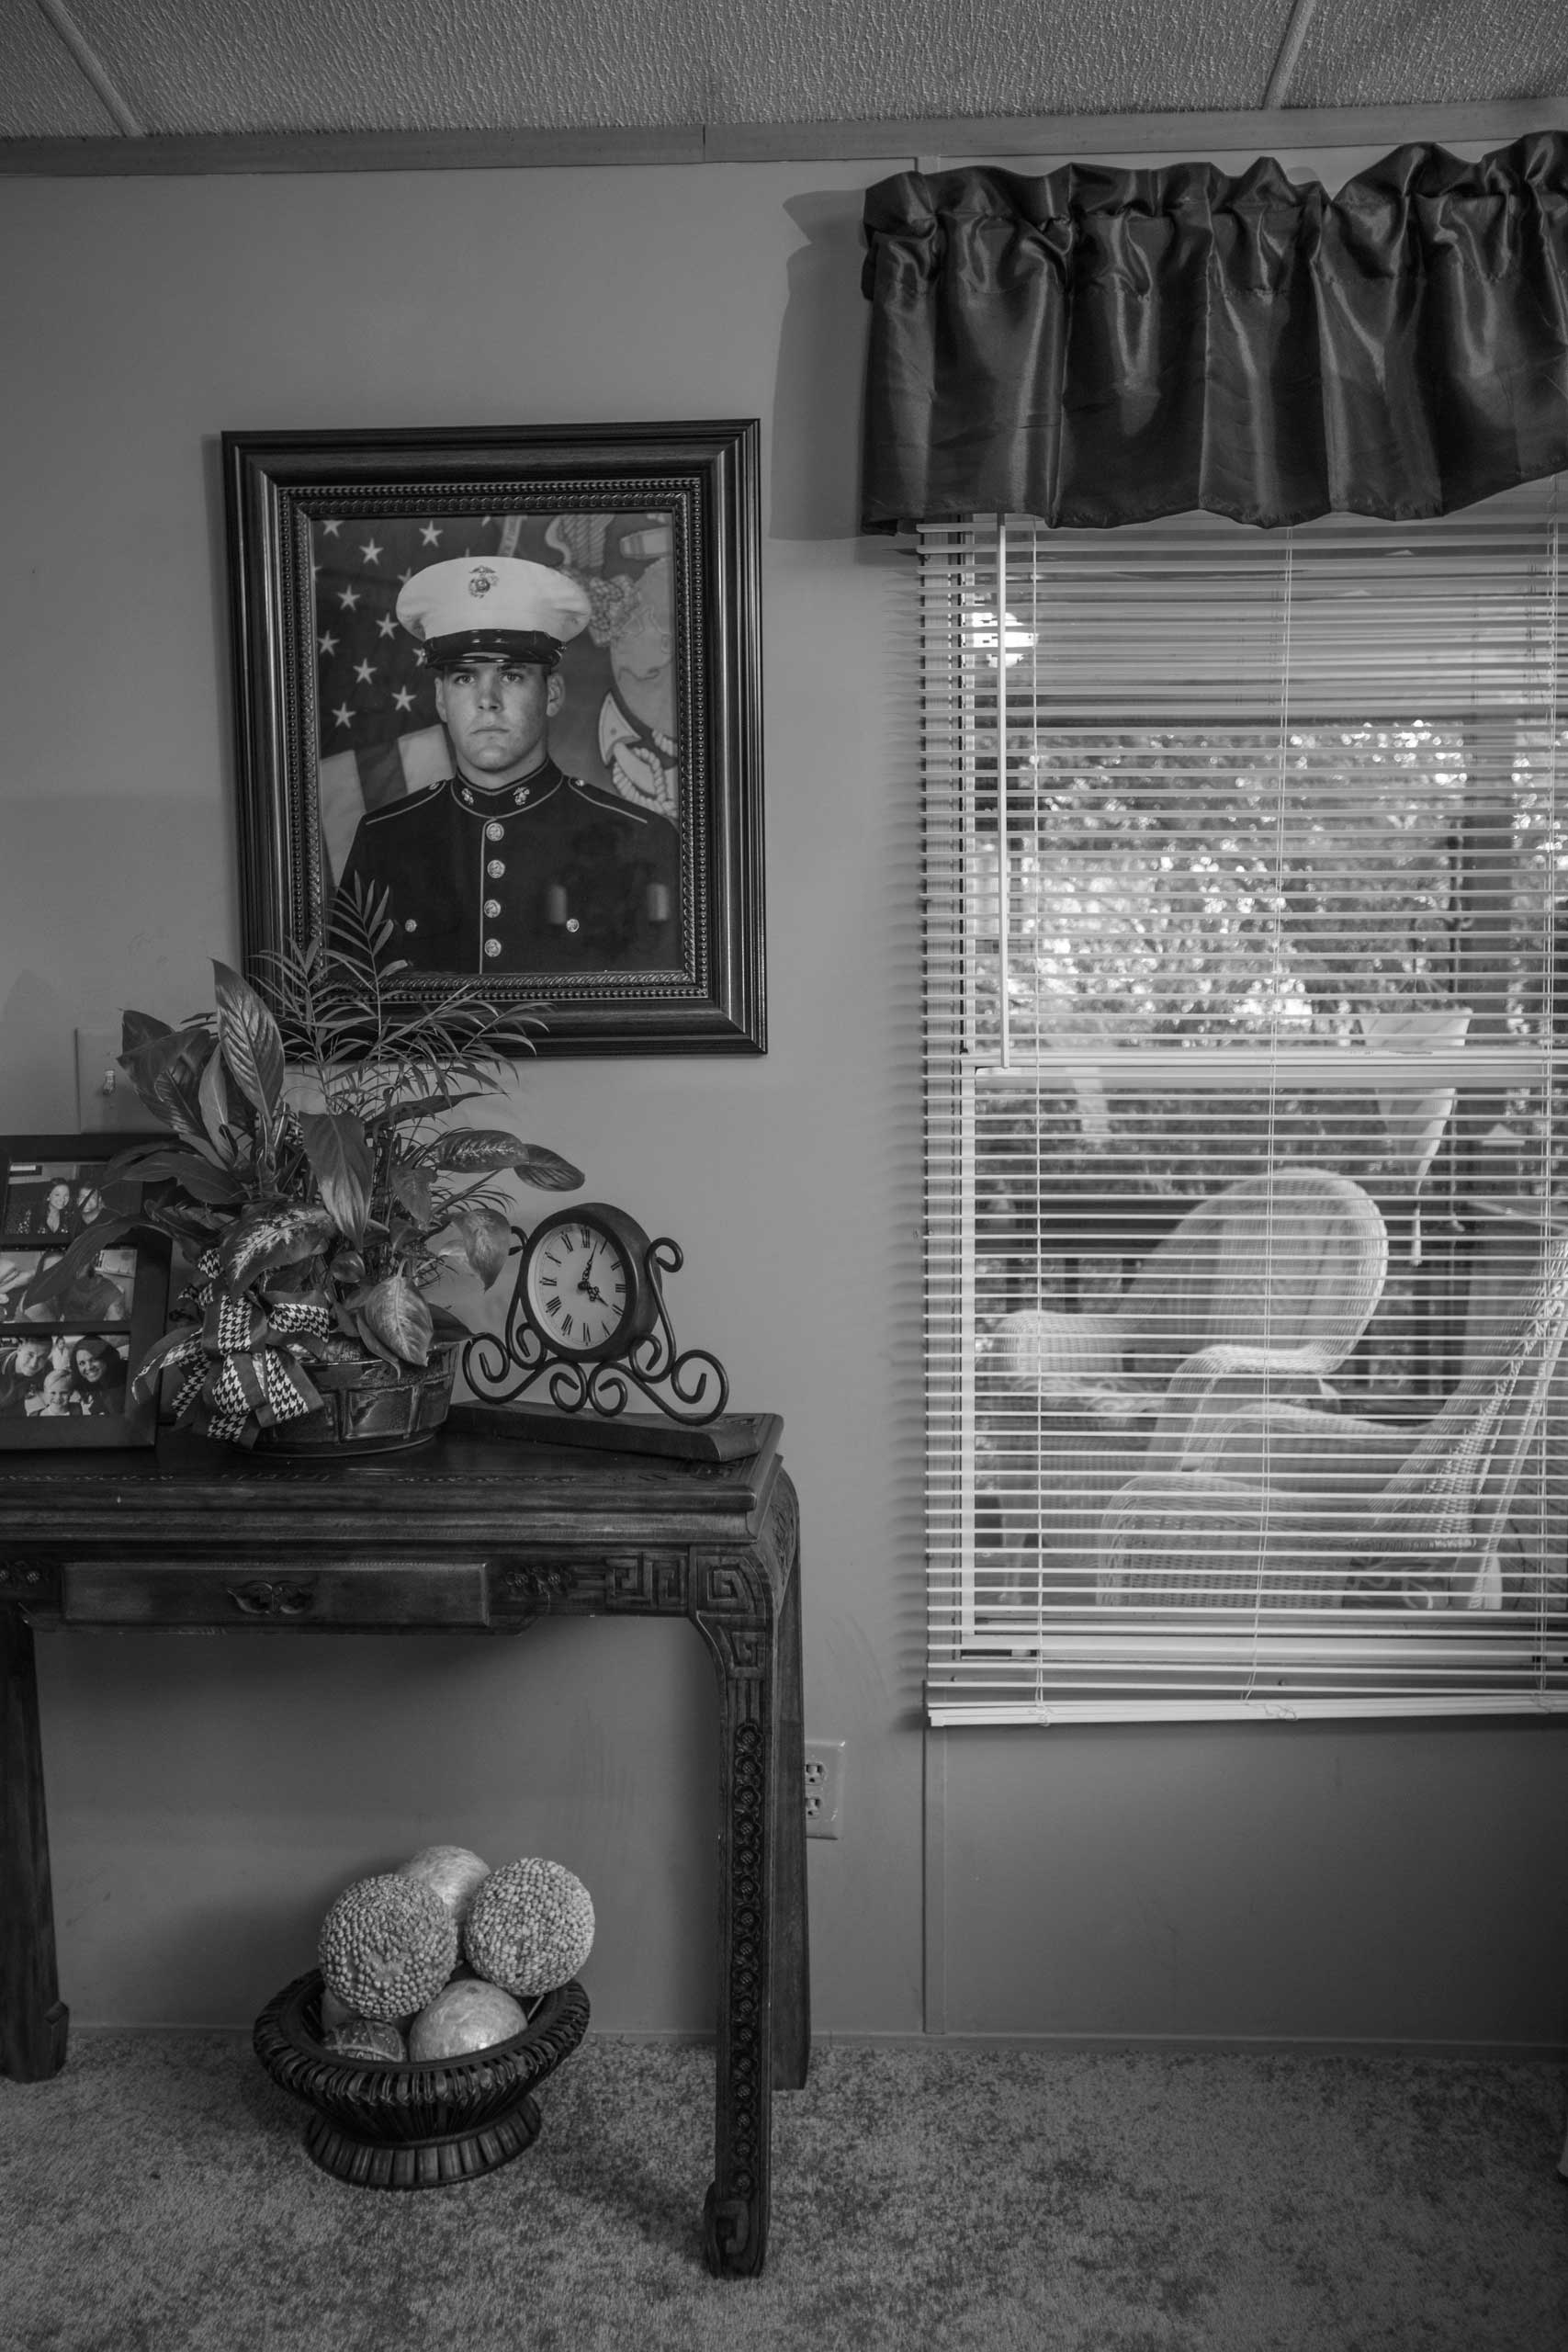 Brandon Ladner. Pelham, Ala.                                                              A large portrait of Brandon Ladner hangs in the living room of his former home in Pelham, Alabama. Brandon was a U.S. Marine Corps Veteran. He fought in Afghanistan's Helmand Province.